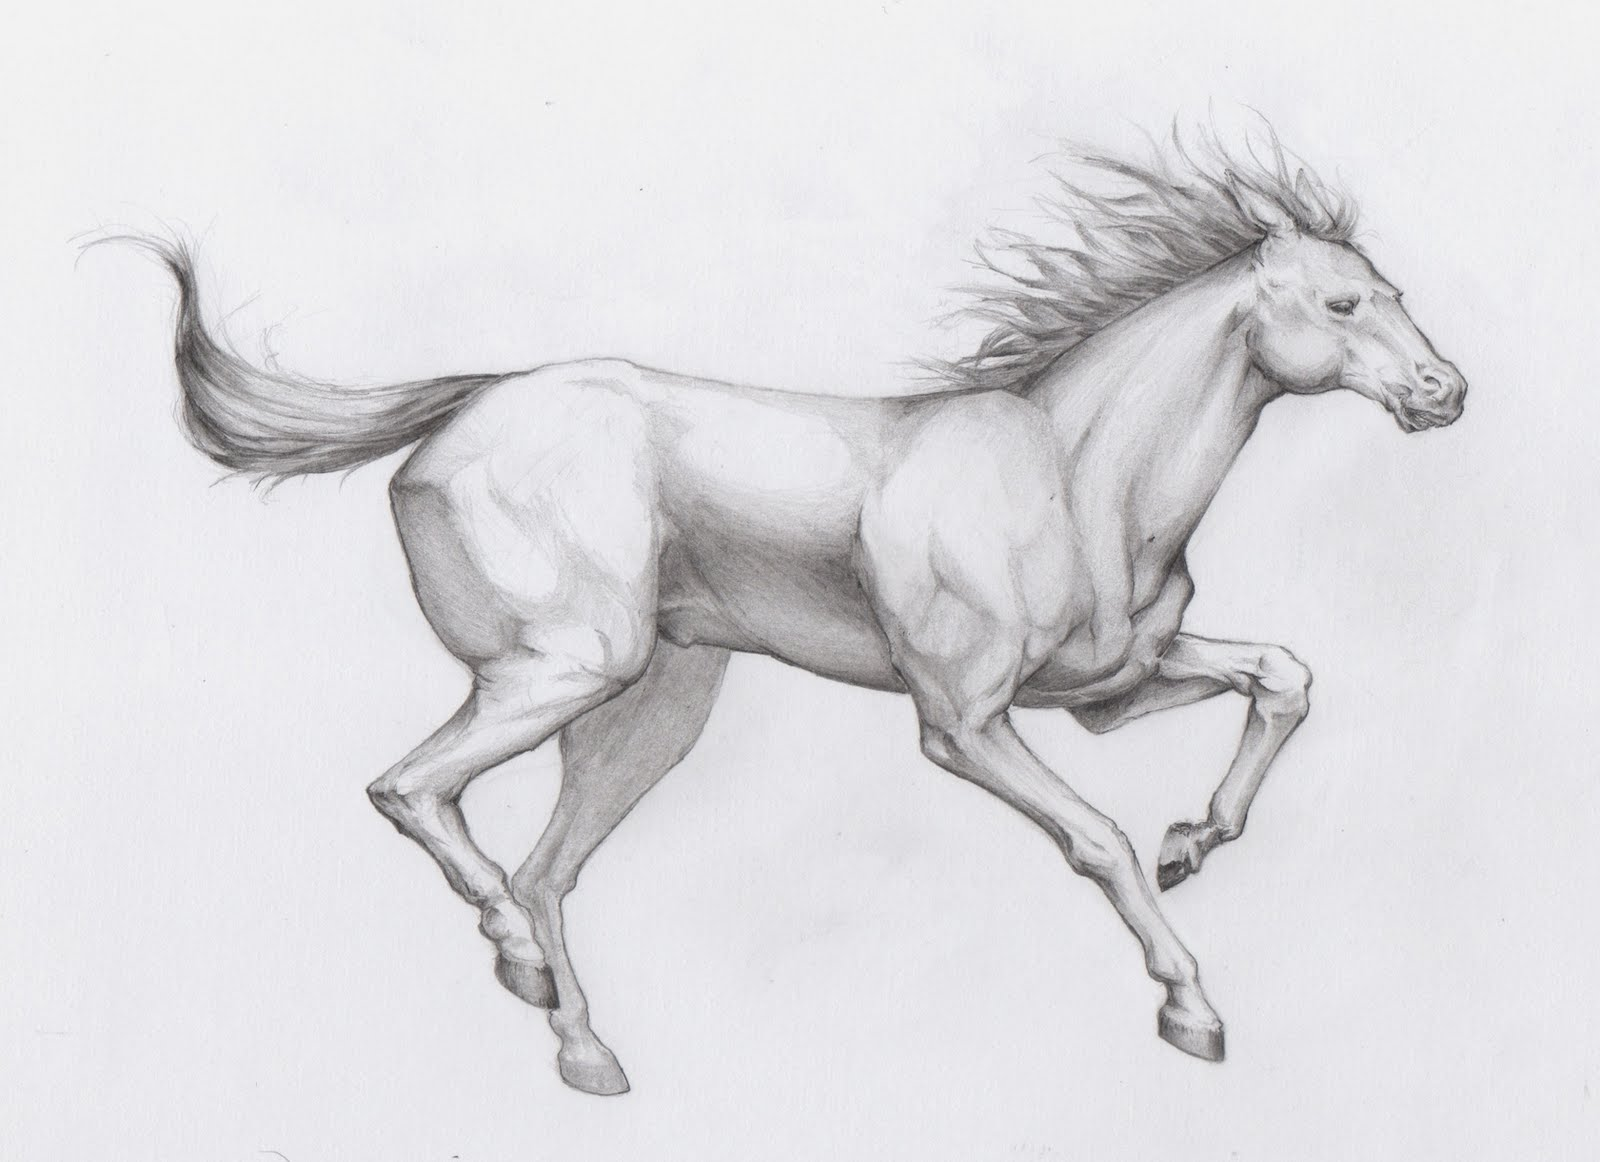 62 Running Horse Tattoos Ideas